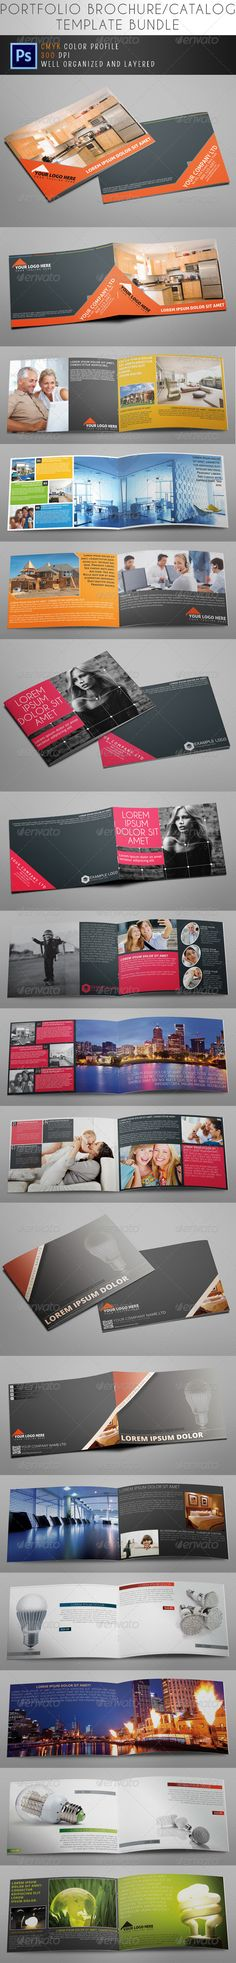 Brochure/Catalog Bundle Vol.1